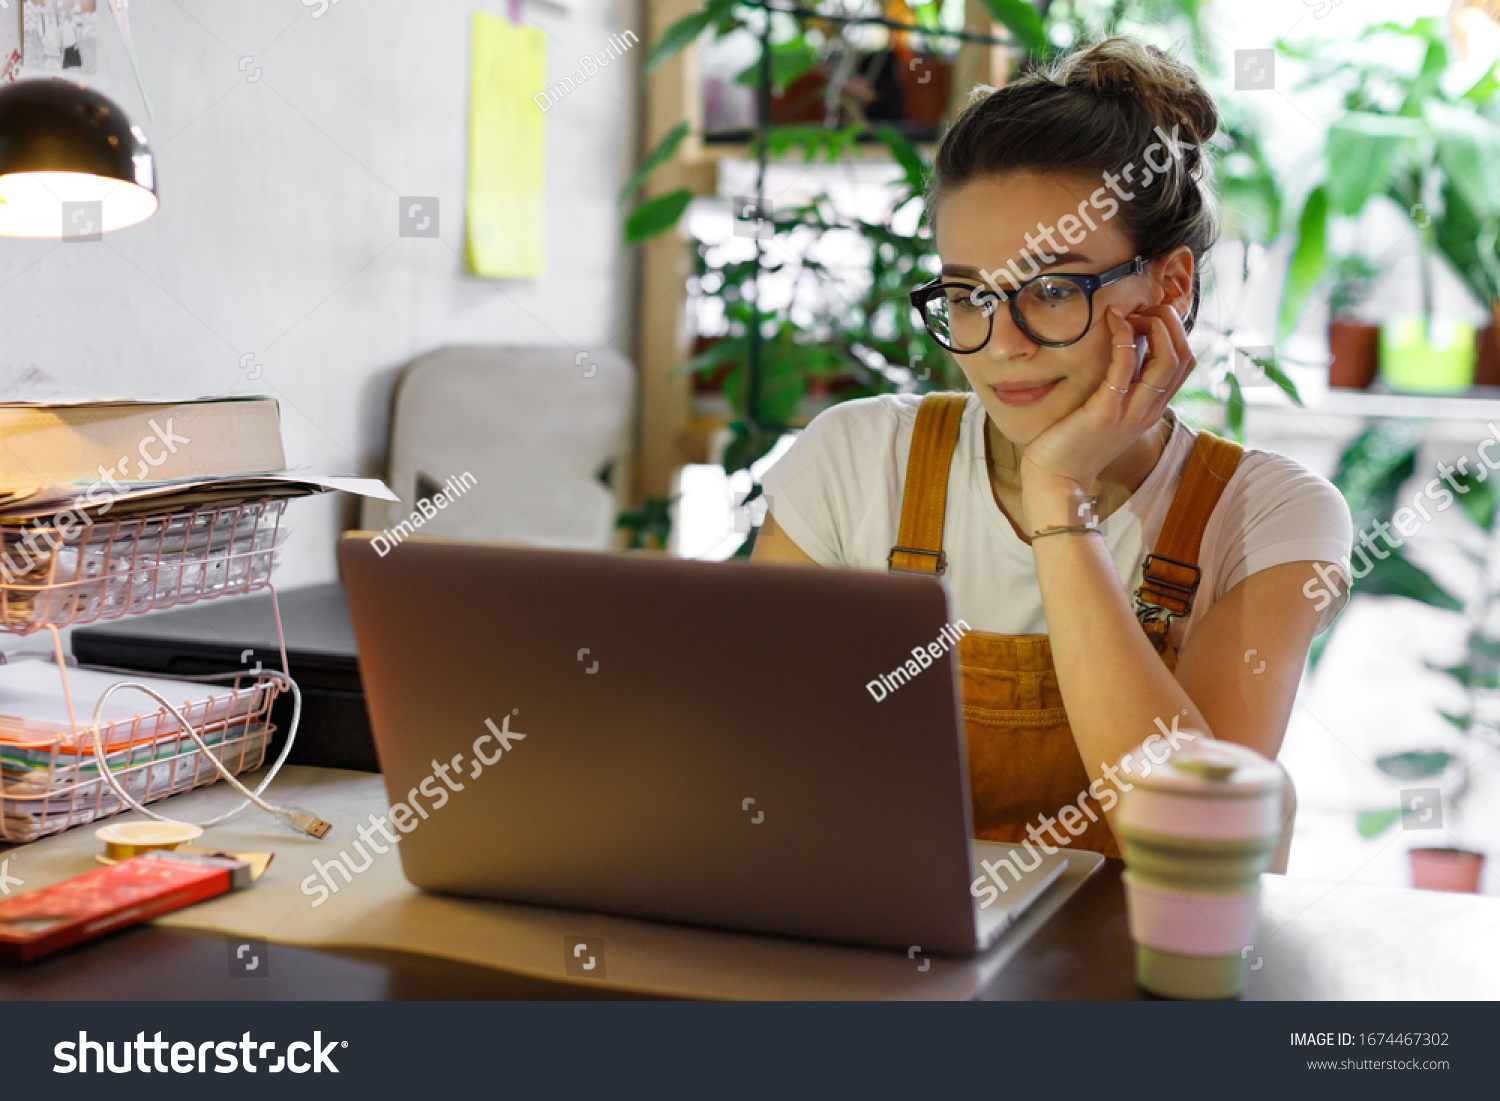 Young female gardener in glasses using laptop, communicates on internet with customer in home garden/greenhouse, reusable coffee/tea mug on table.Cozy office workplace, remote work, E learning concept #1674467302